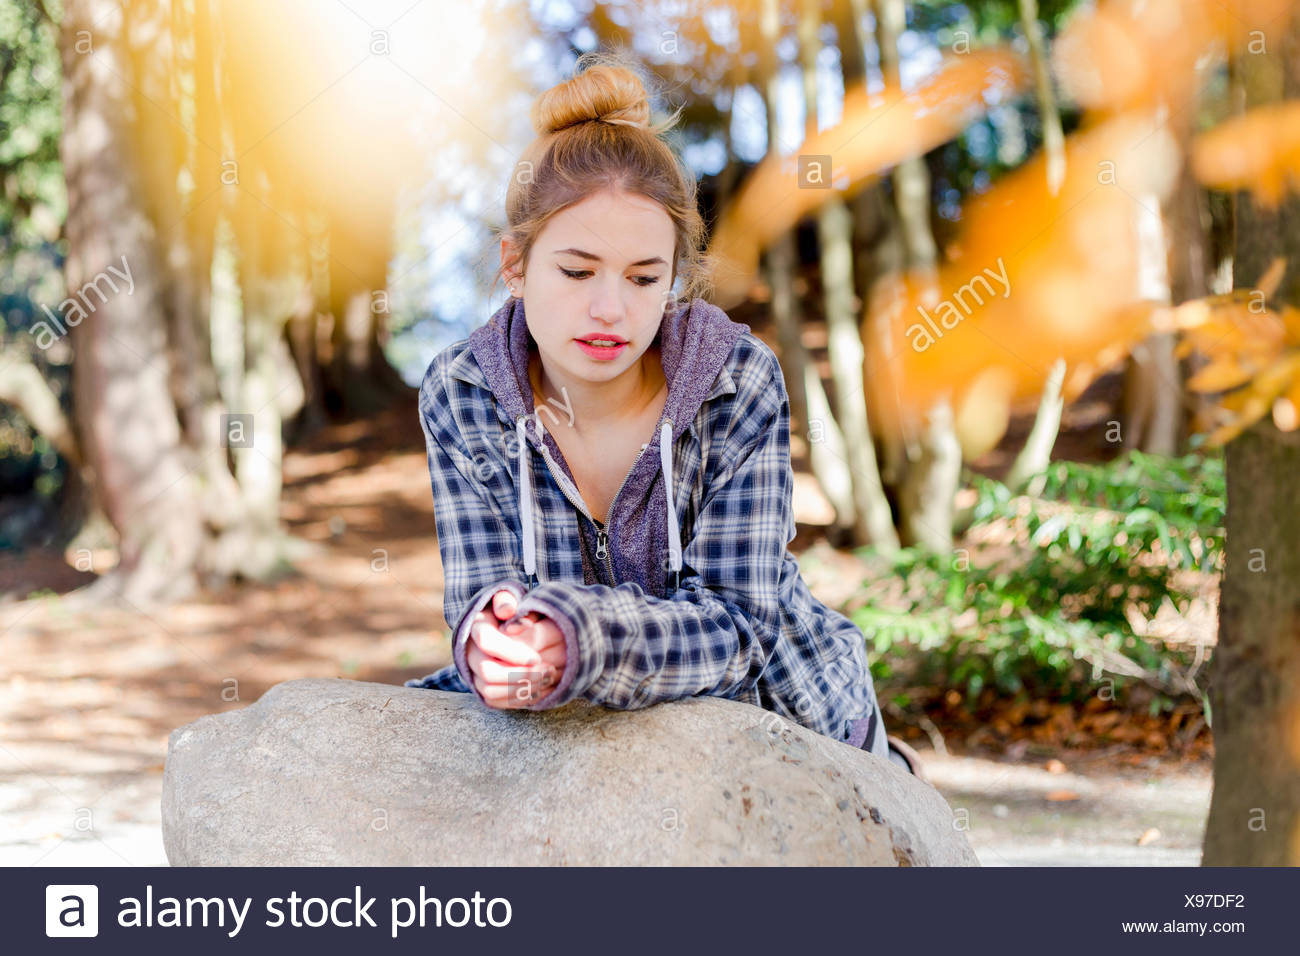 This young teenage girl hangs out alone in a park, sitting on a rock in a thoughtful disengaged position thinking to herself - Stock Image